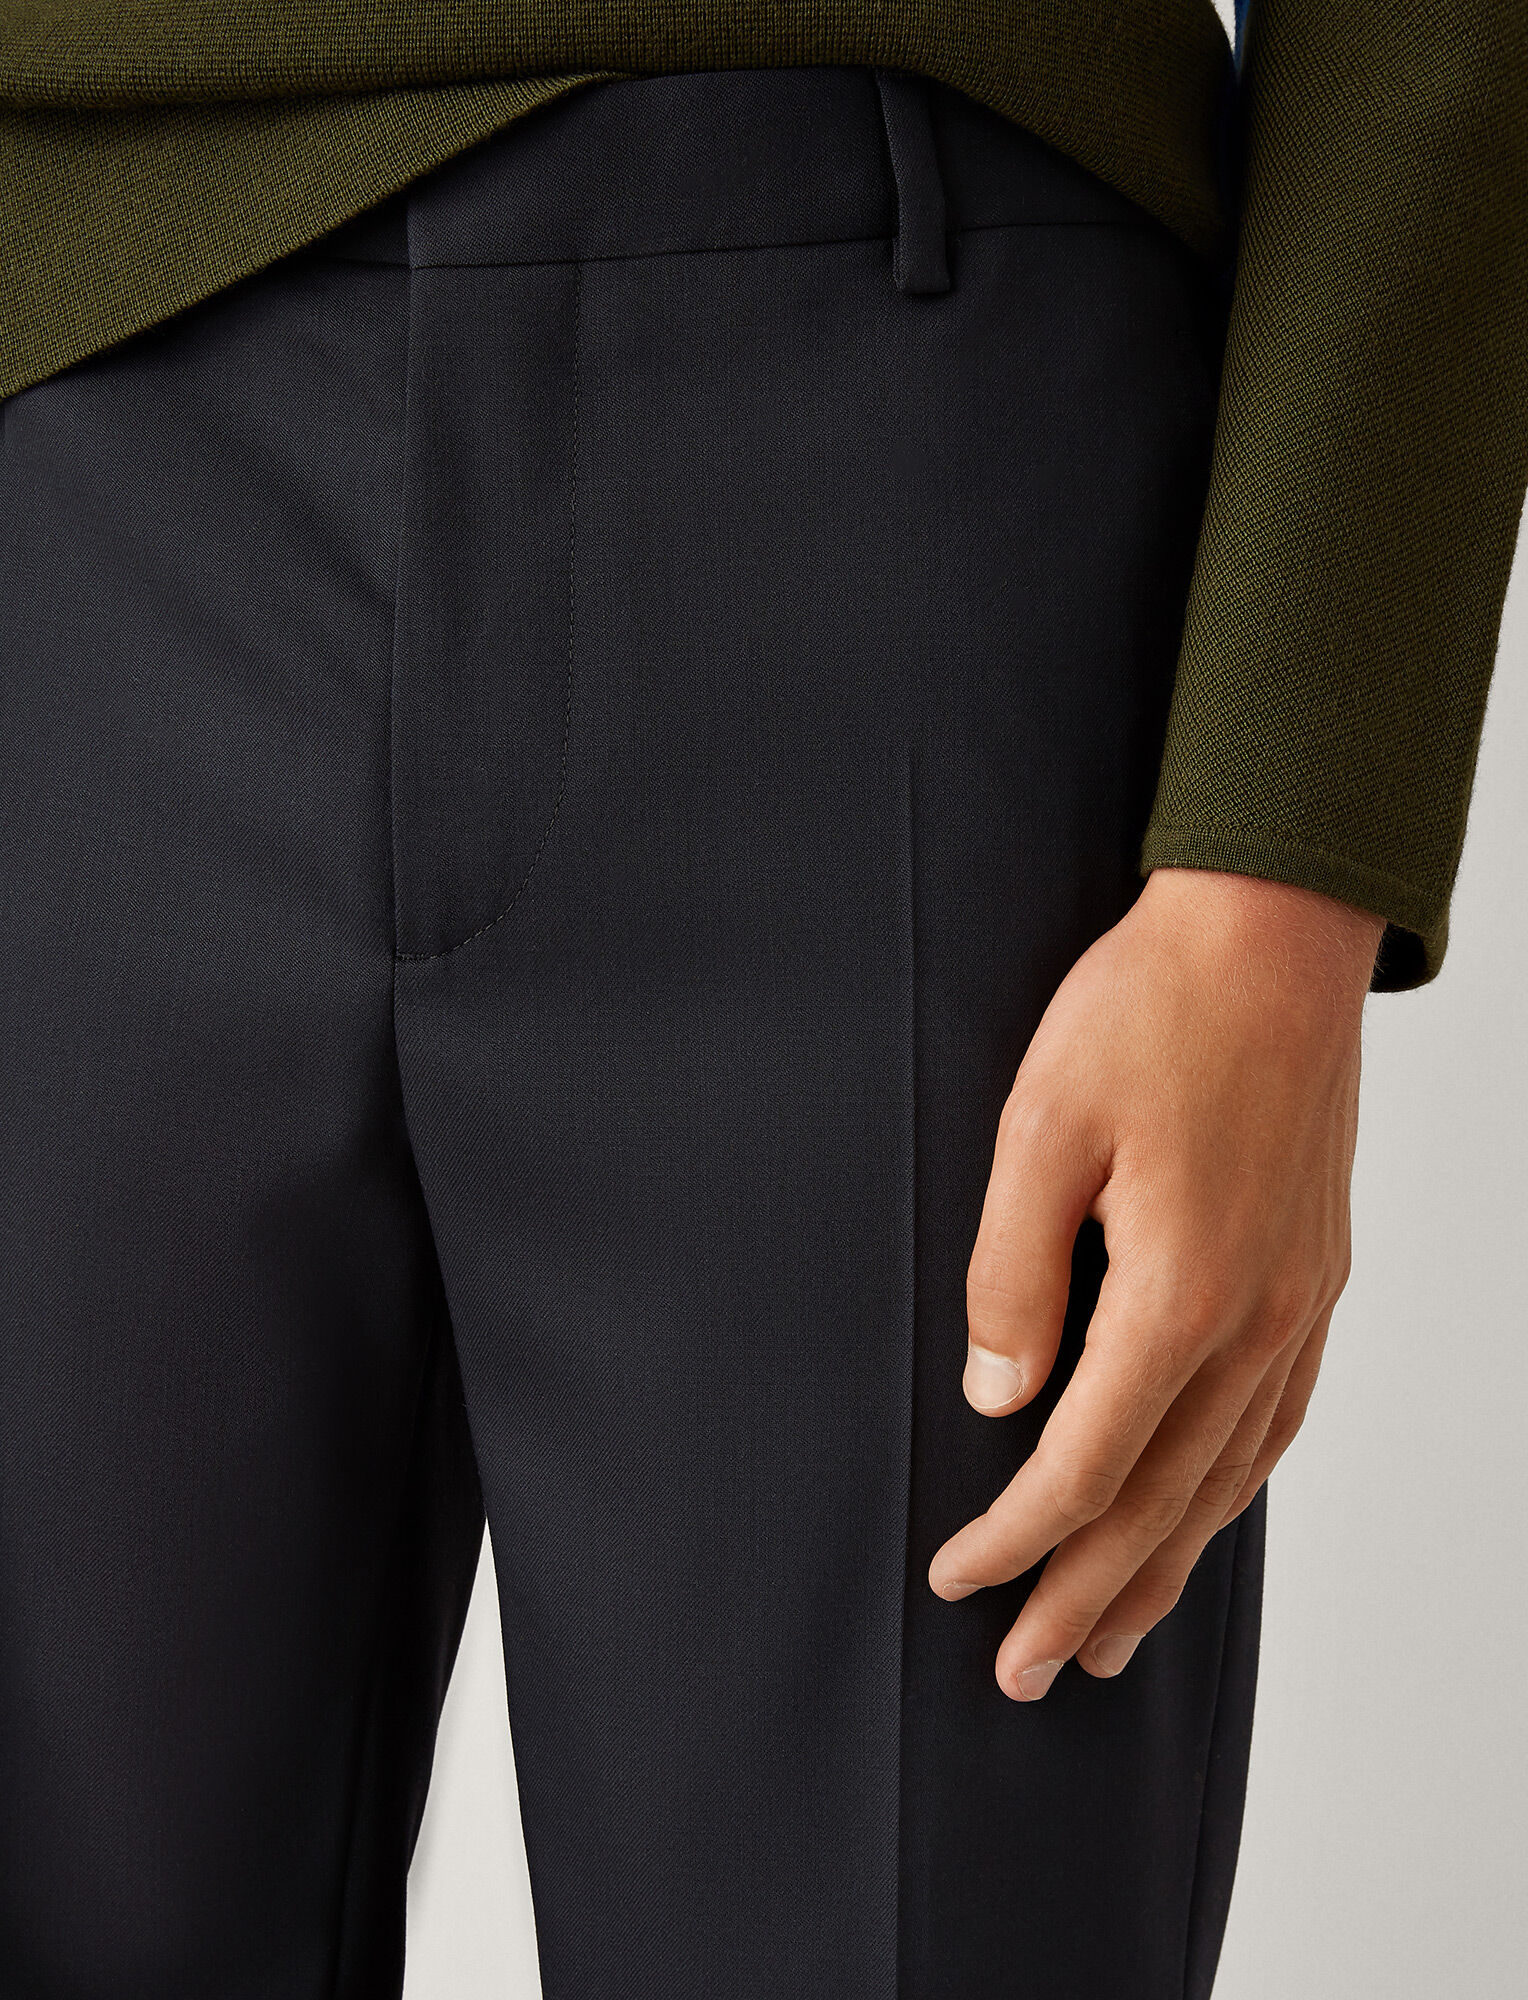 Joseph, Jack Fine Comfort Wool Trousers, in NAVY